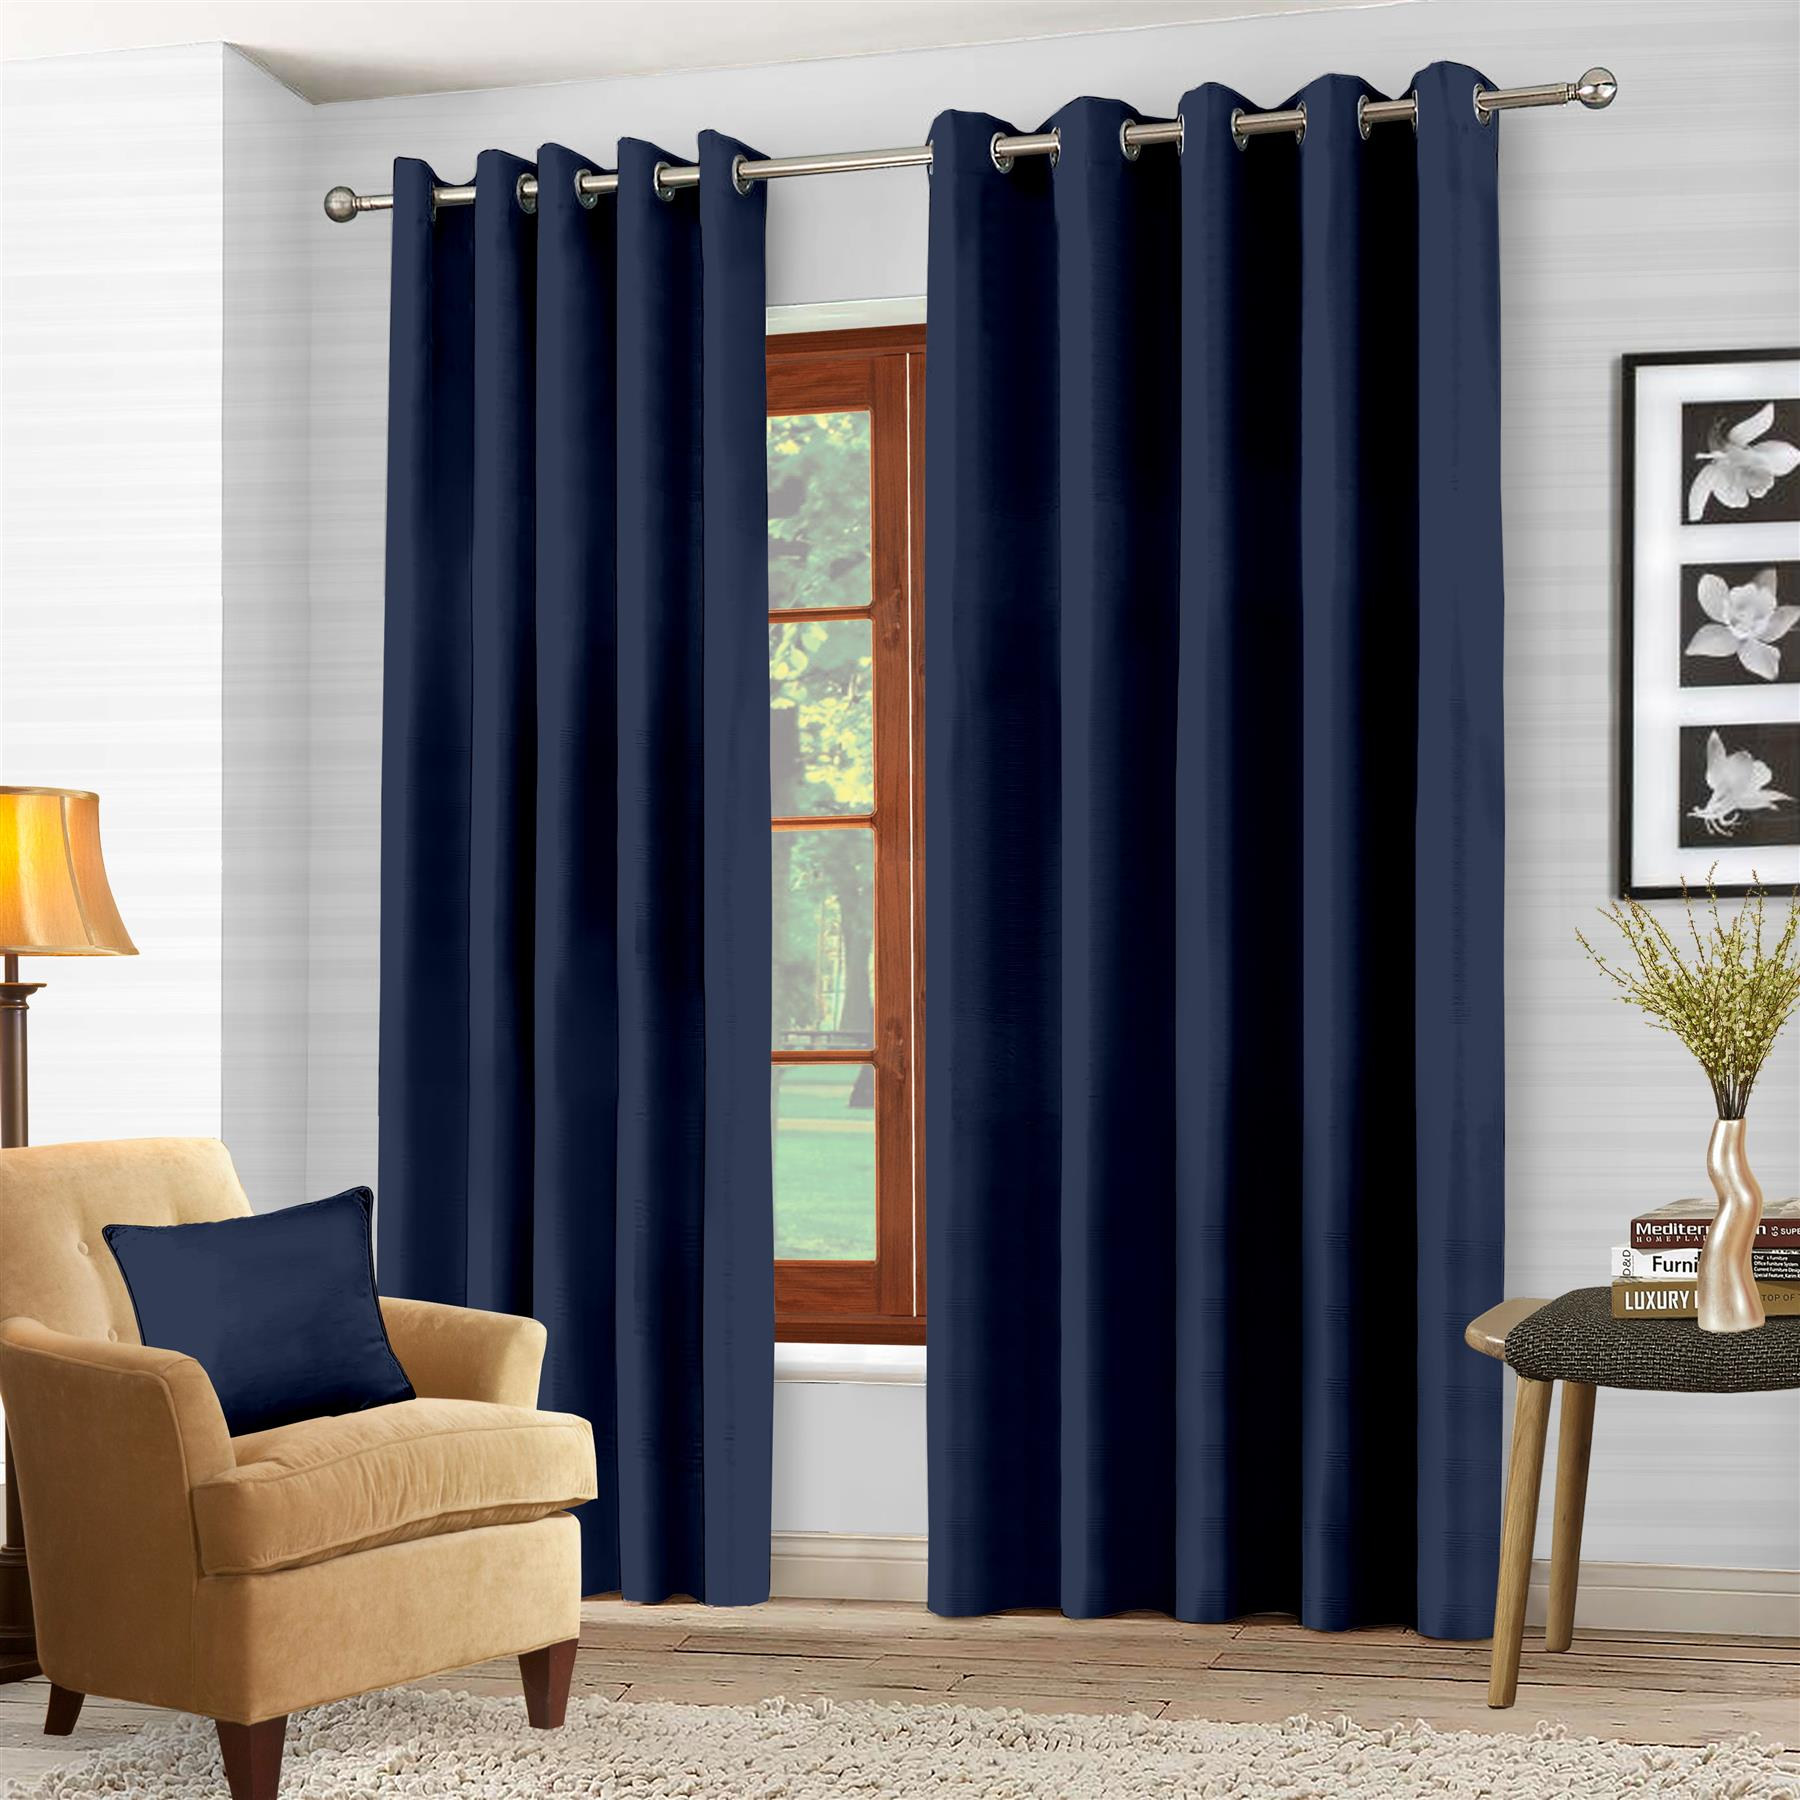 Luxury-Thermal-Blackout-Eyelet-Ring-Top-Curtains-Pair-with-tie-backs thumbnail 28